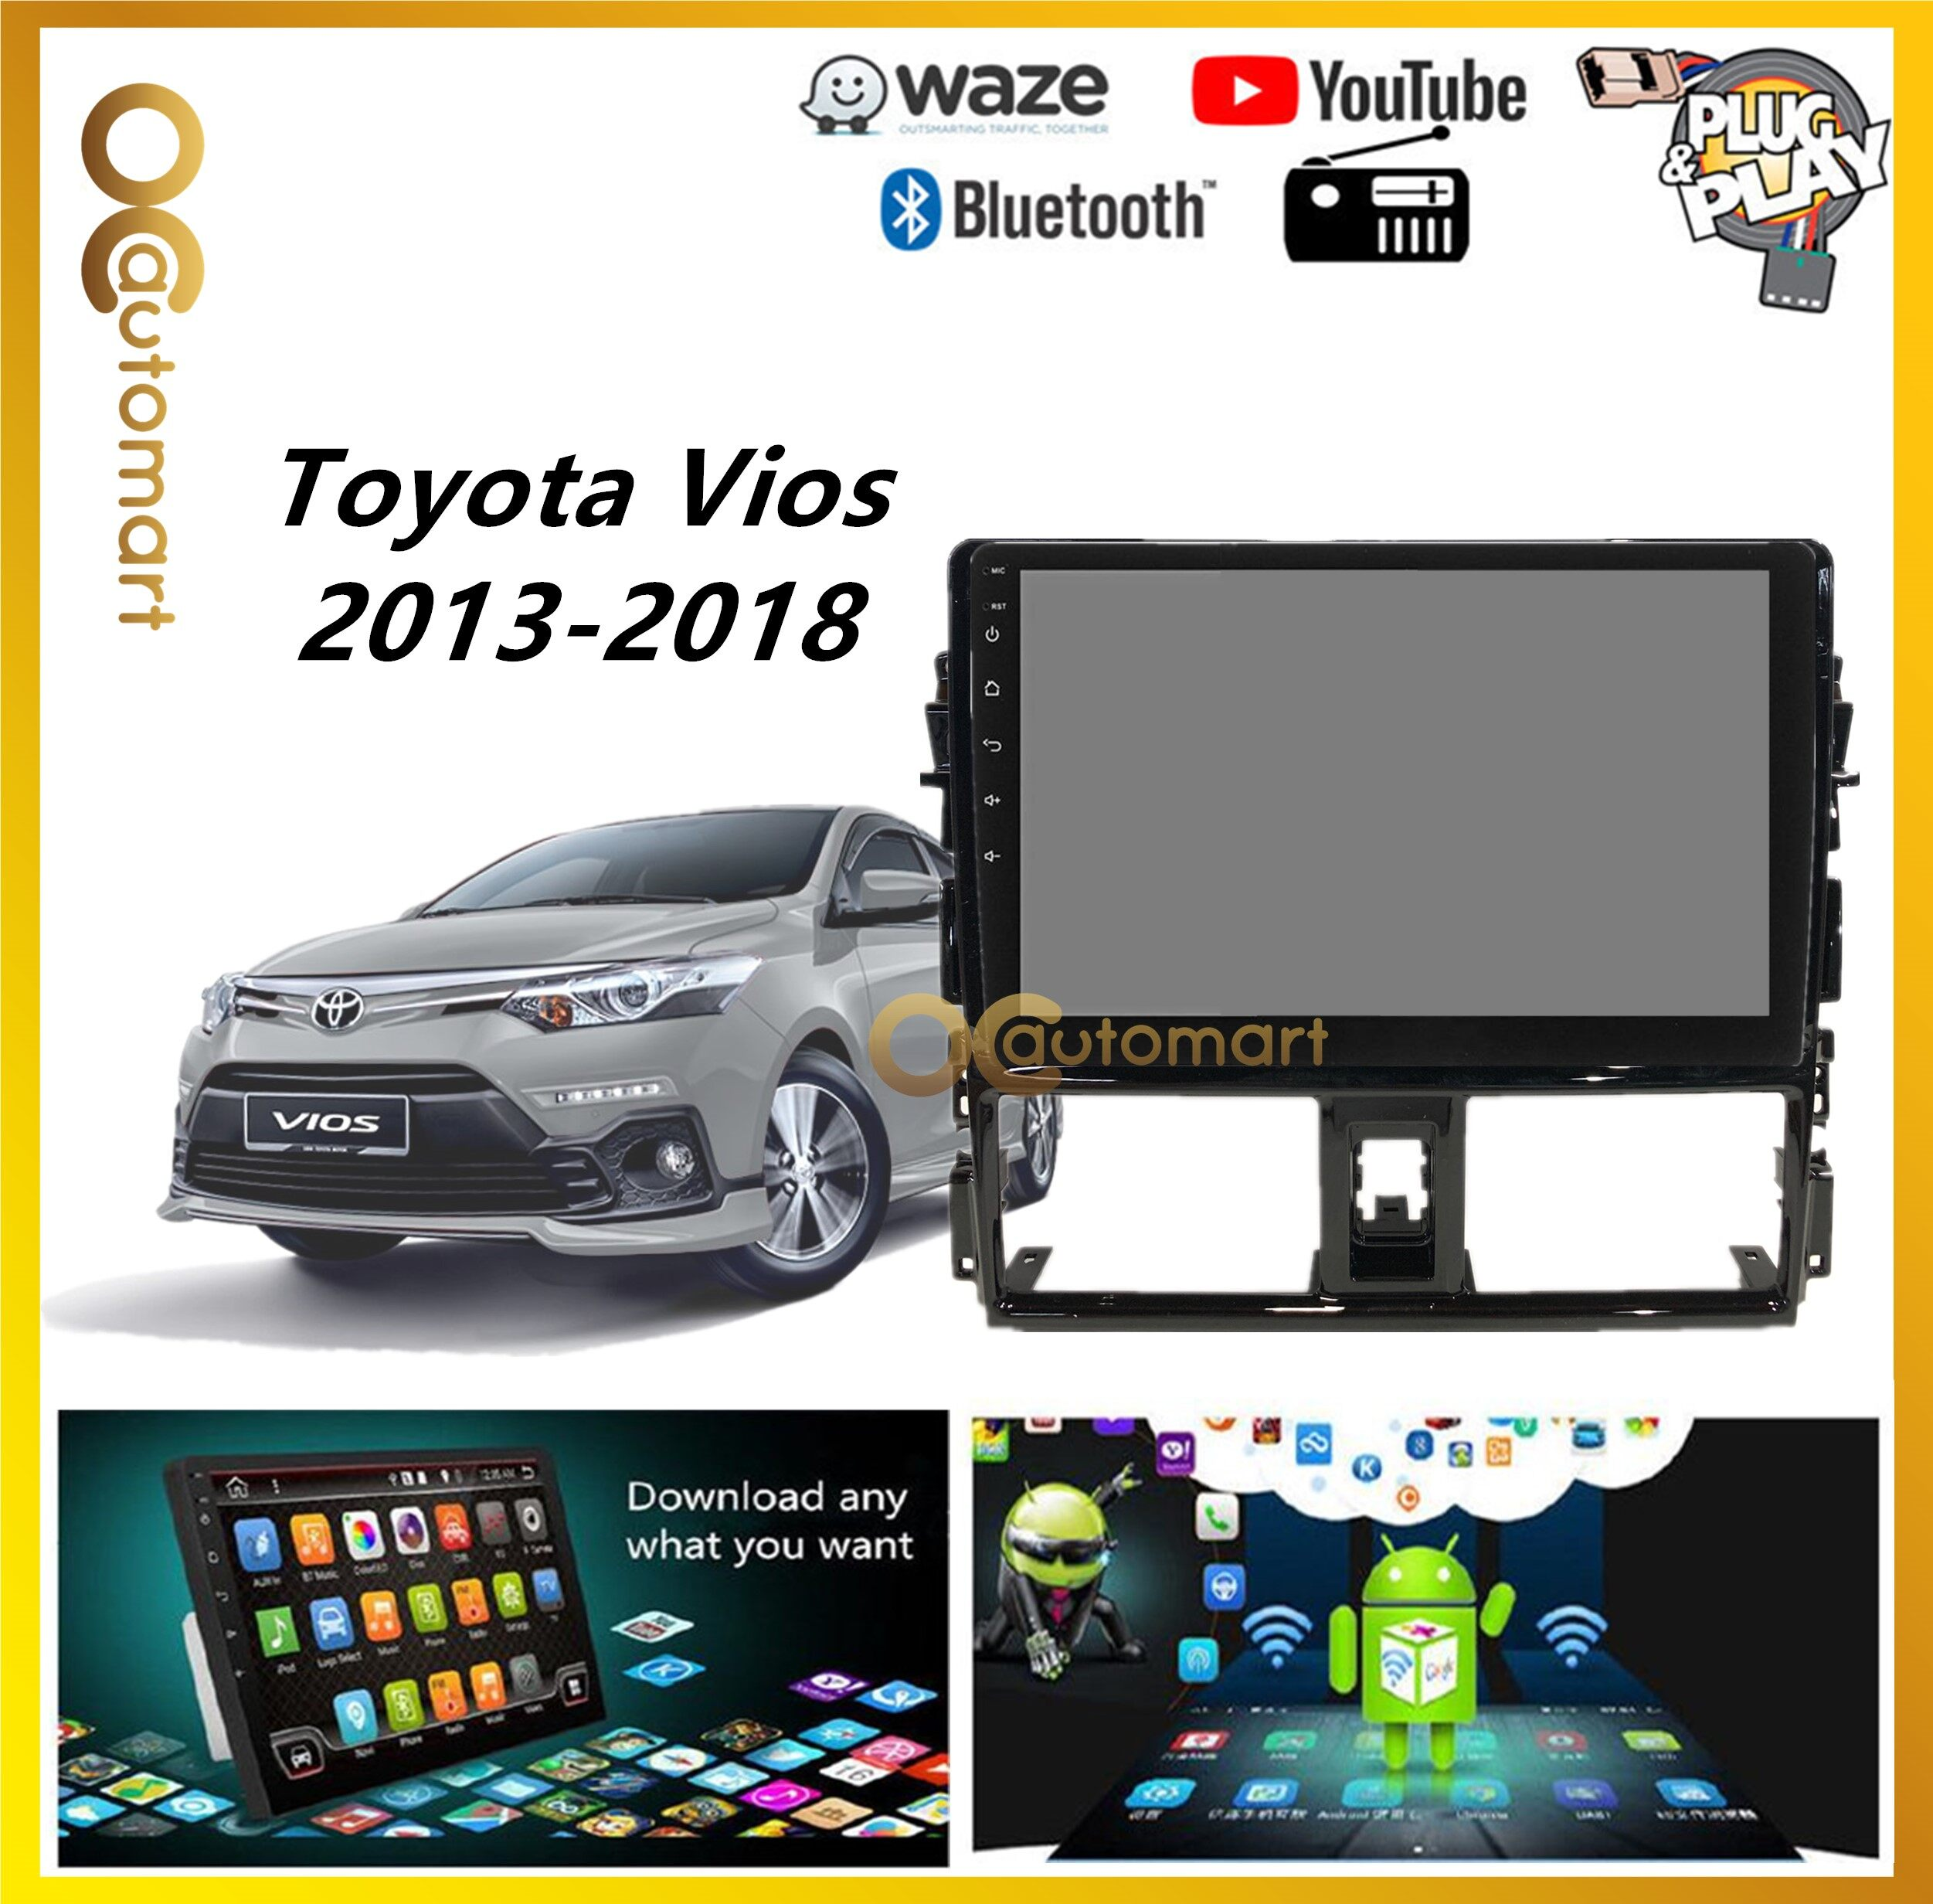 Toyota Vios 2014 - 2018 Android Player With Casing IPS Screen 1GB Android 8.1 Plug and Play With WIFI And TouchScreen MP3 MP4 MP5 CD FM USB SD BT (NO DVD)